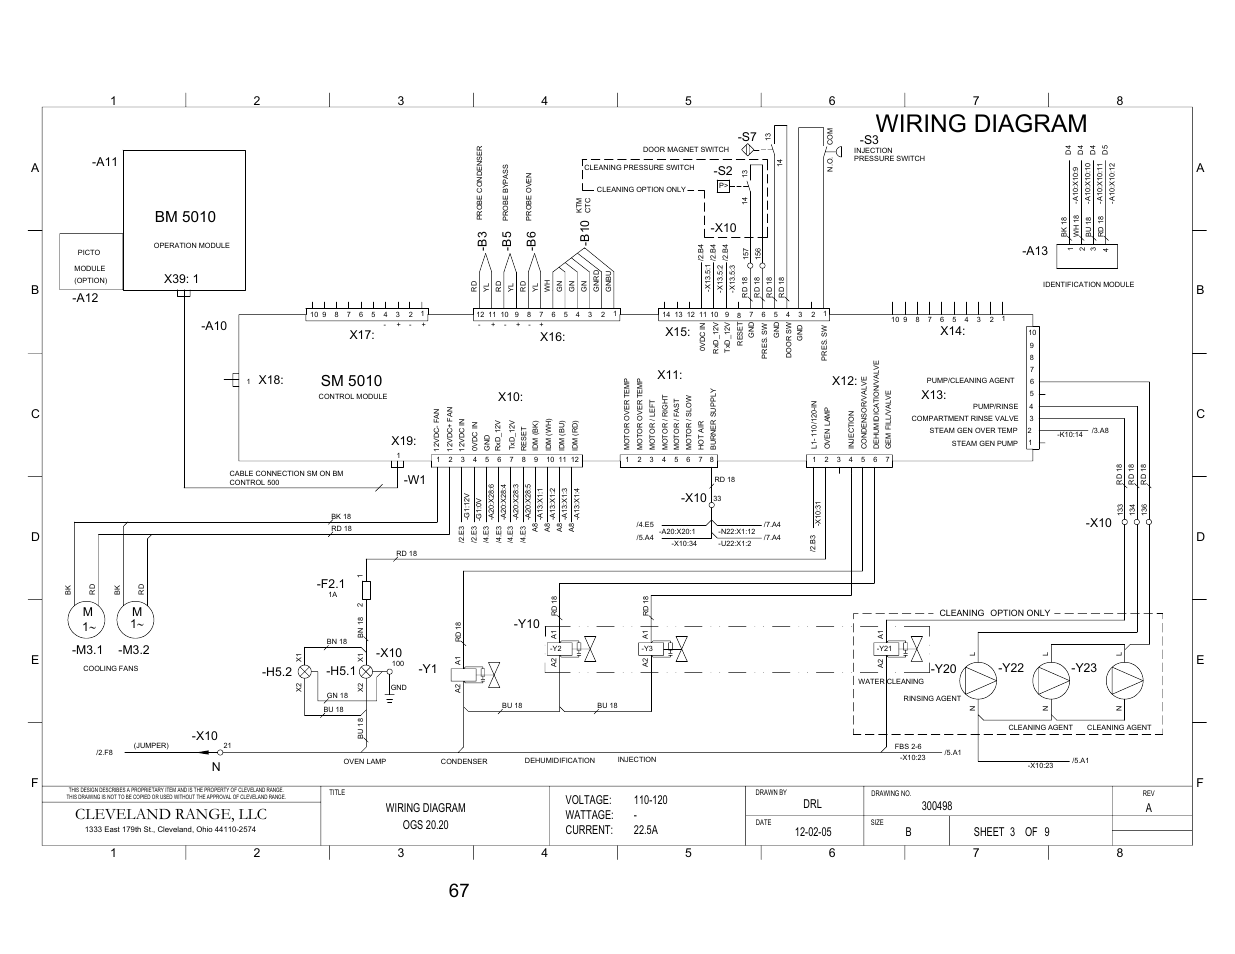 Pg 3, Wiring diagram, Sm 5010 | Cleveland Range Convotherm Combination Oven-Steamer  Gas 20.20 User Manual | Page 75 / 81